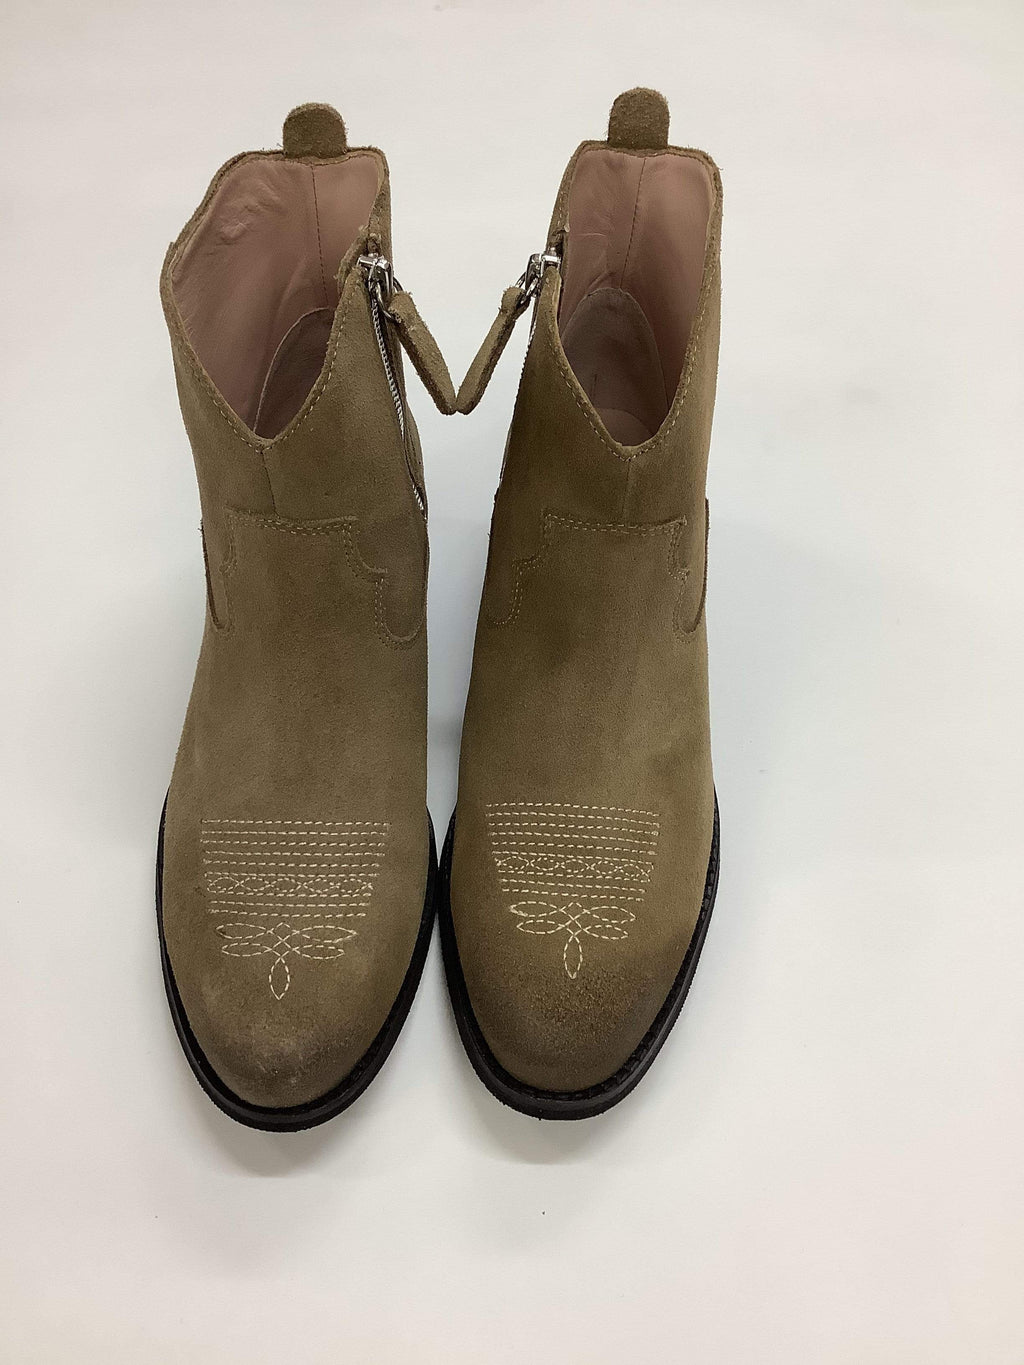 Marc Cain Shoes Marc Cain Short Beige Cowboy Style Boot MB SB.11 L37 izzi-of-baslow